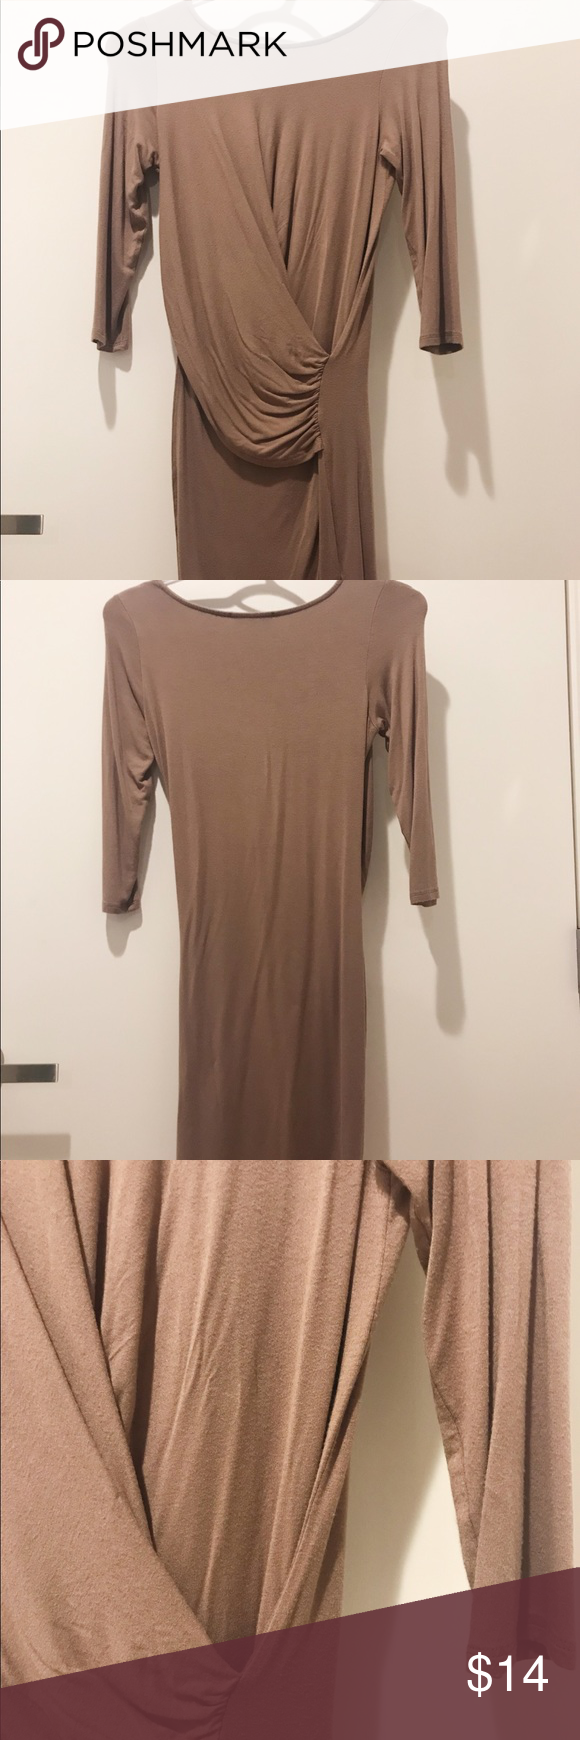 Before Midnight Dress in Nude